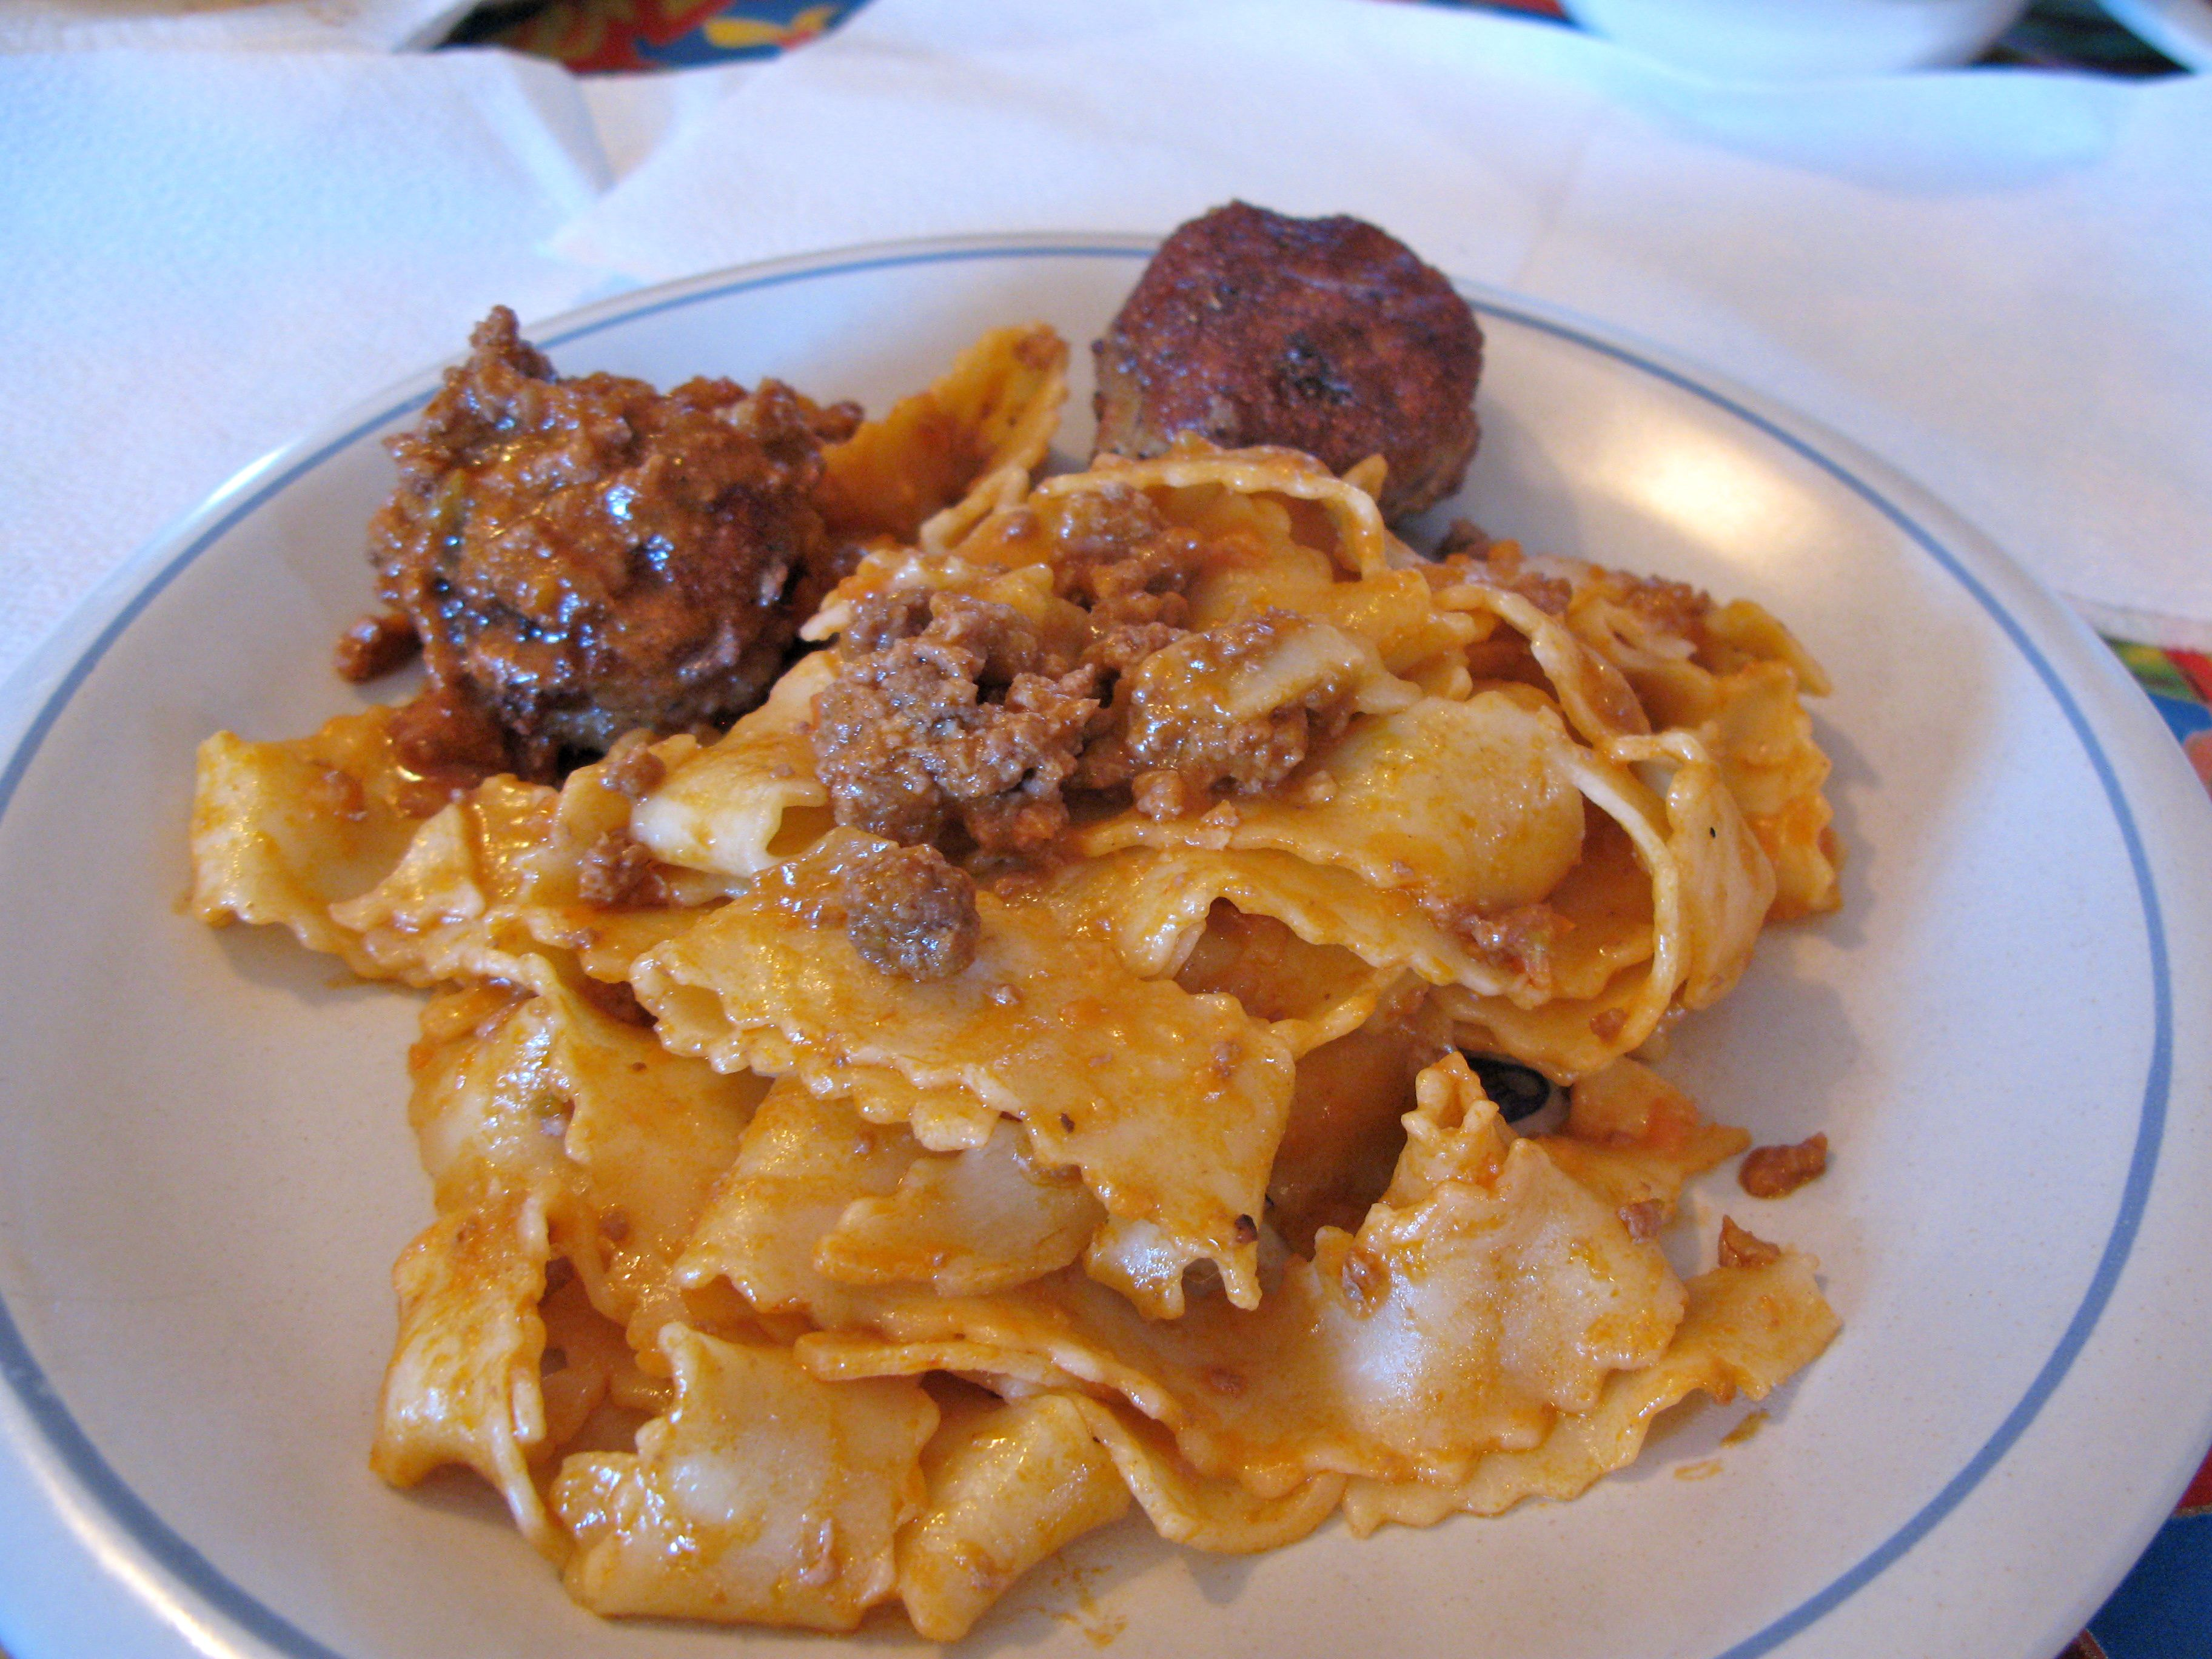 Here a bolognese sauce is paired with pasta and meatballs (aka: polpette).